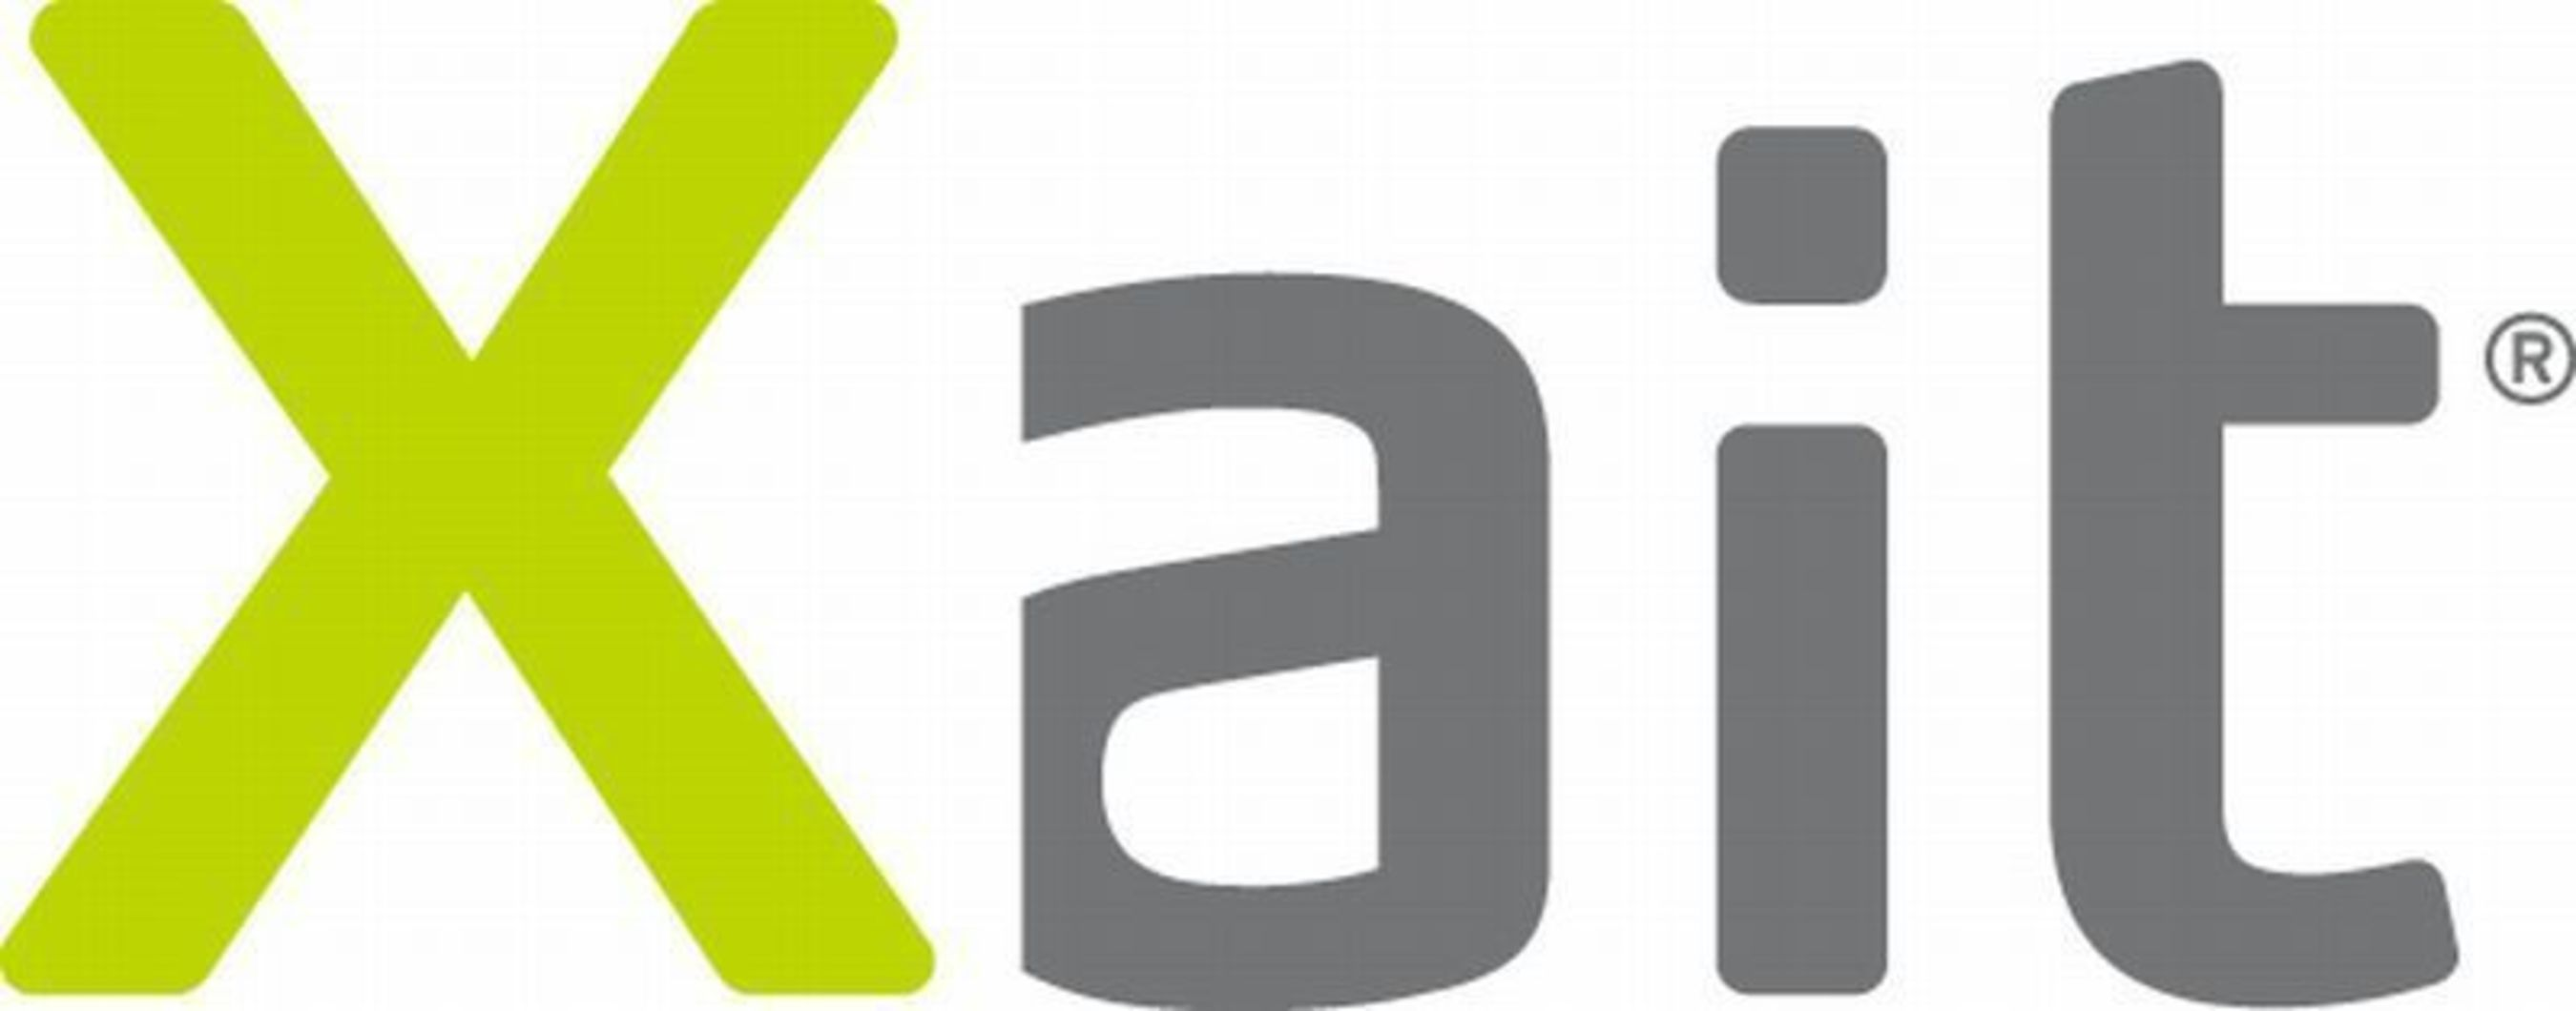 Xait Will Exhibit at the APMP's Bid & Proposal Con 2015 in Seattle, From May 26th to May 29th 2015